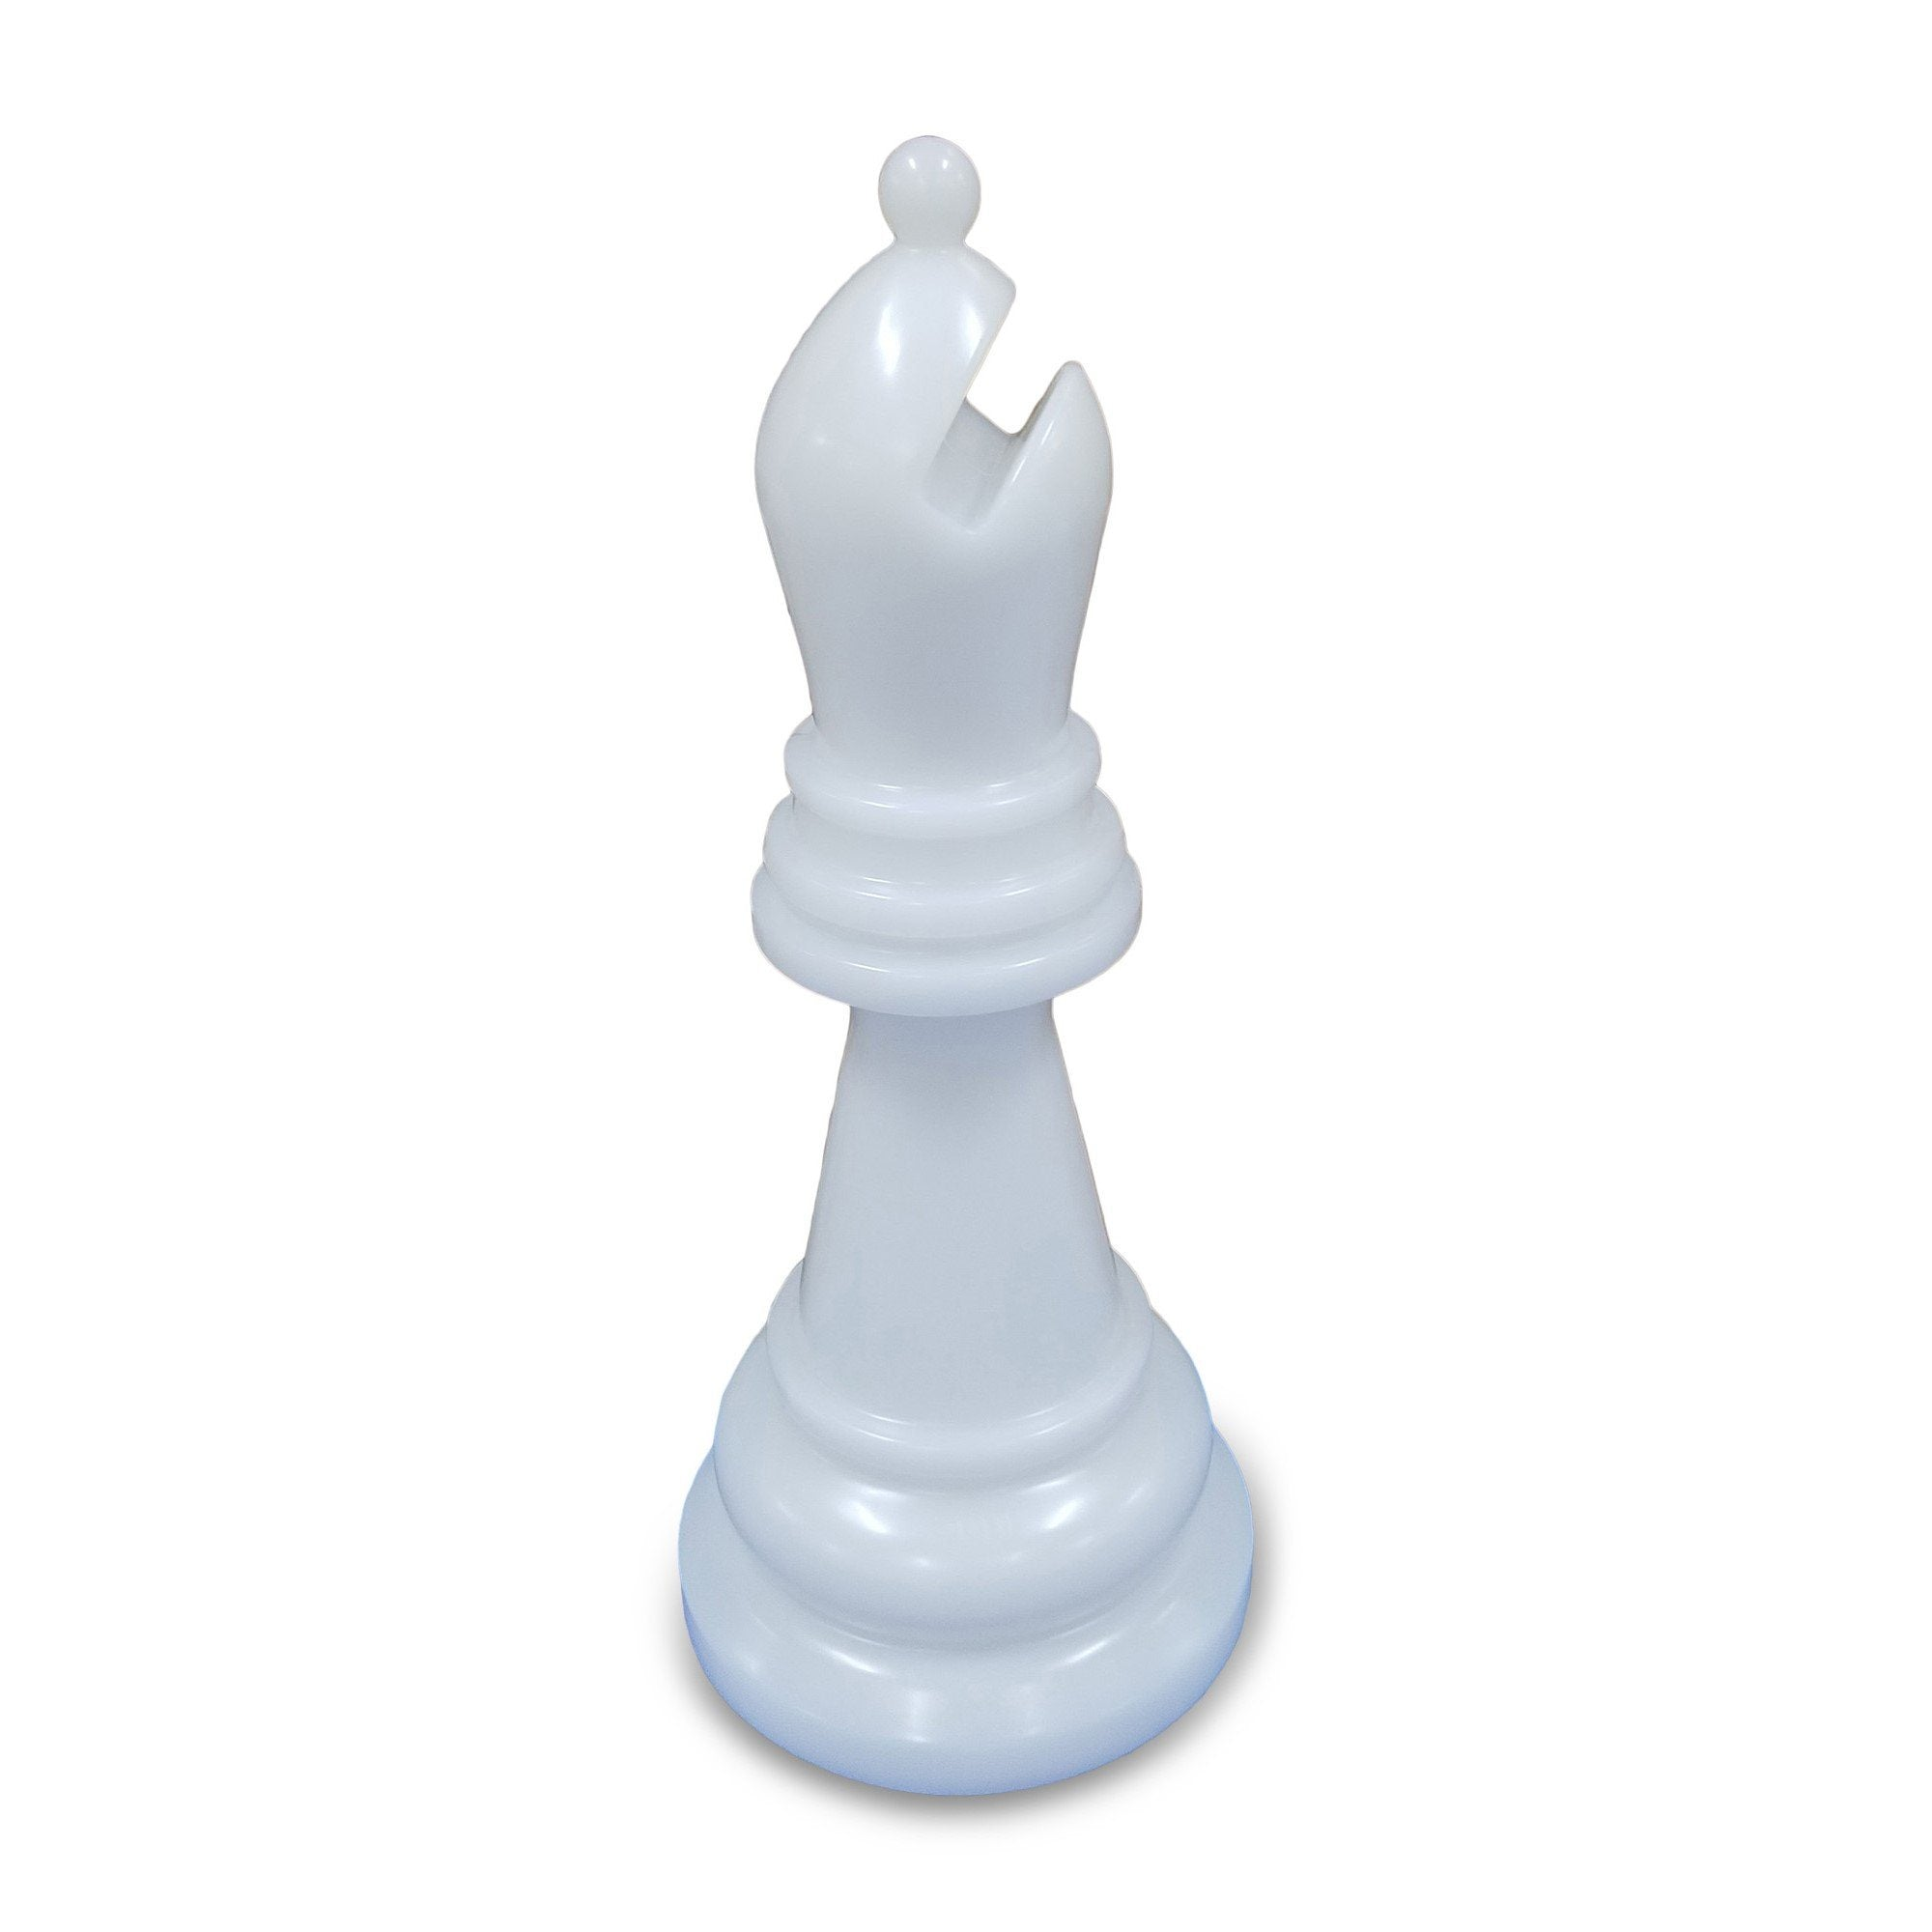 MegaChess 34 Inch White Premium Plastic Bishop Giant Chess Piece | Default Title | GiantChessUSA